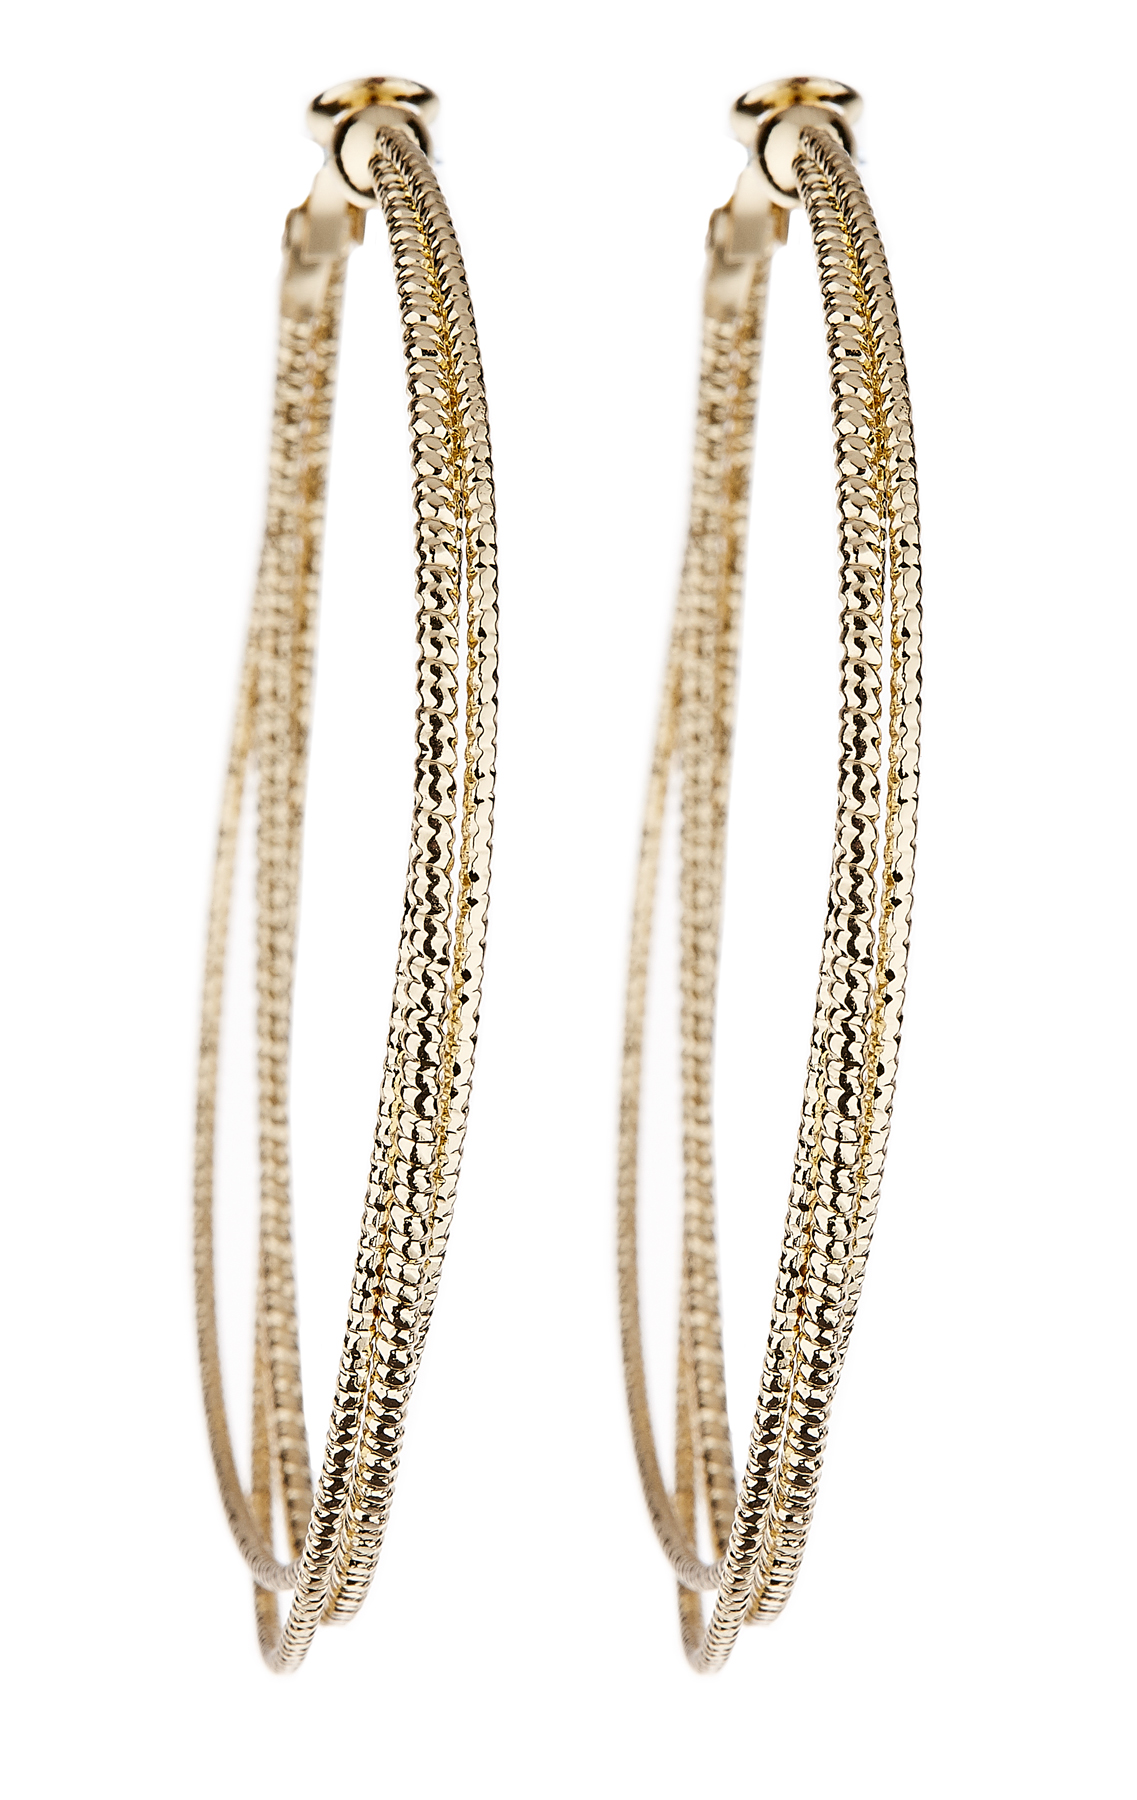 Clip On Earrings - Delta - gold hoop earring with three gold hoops